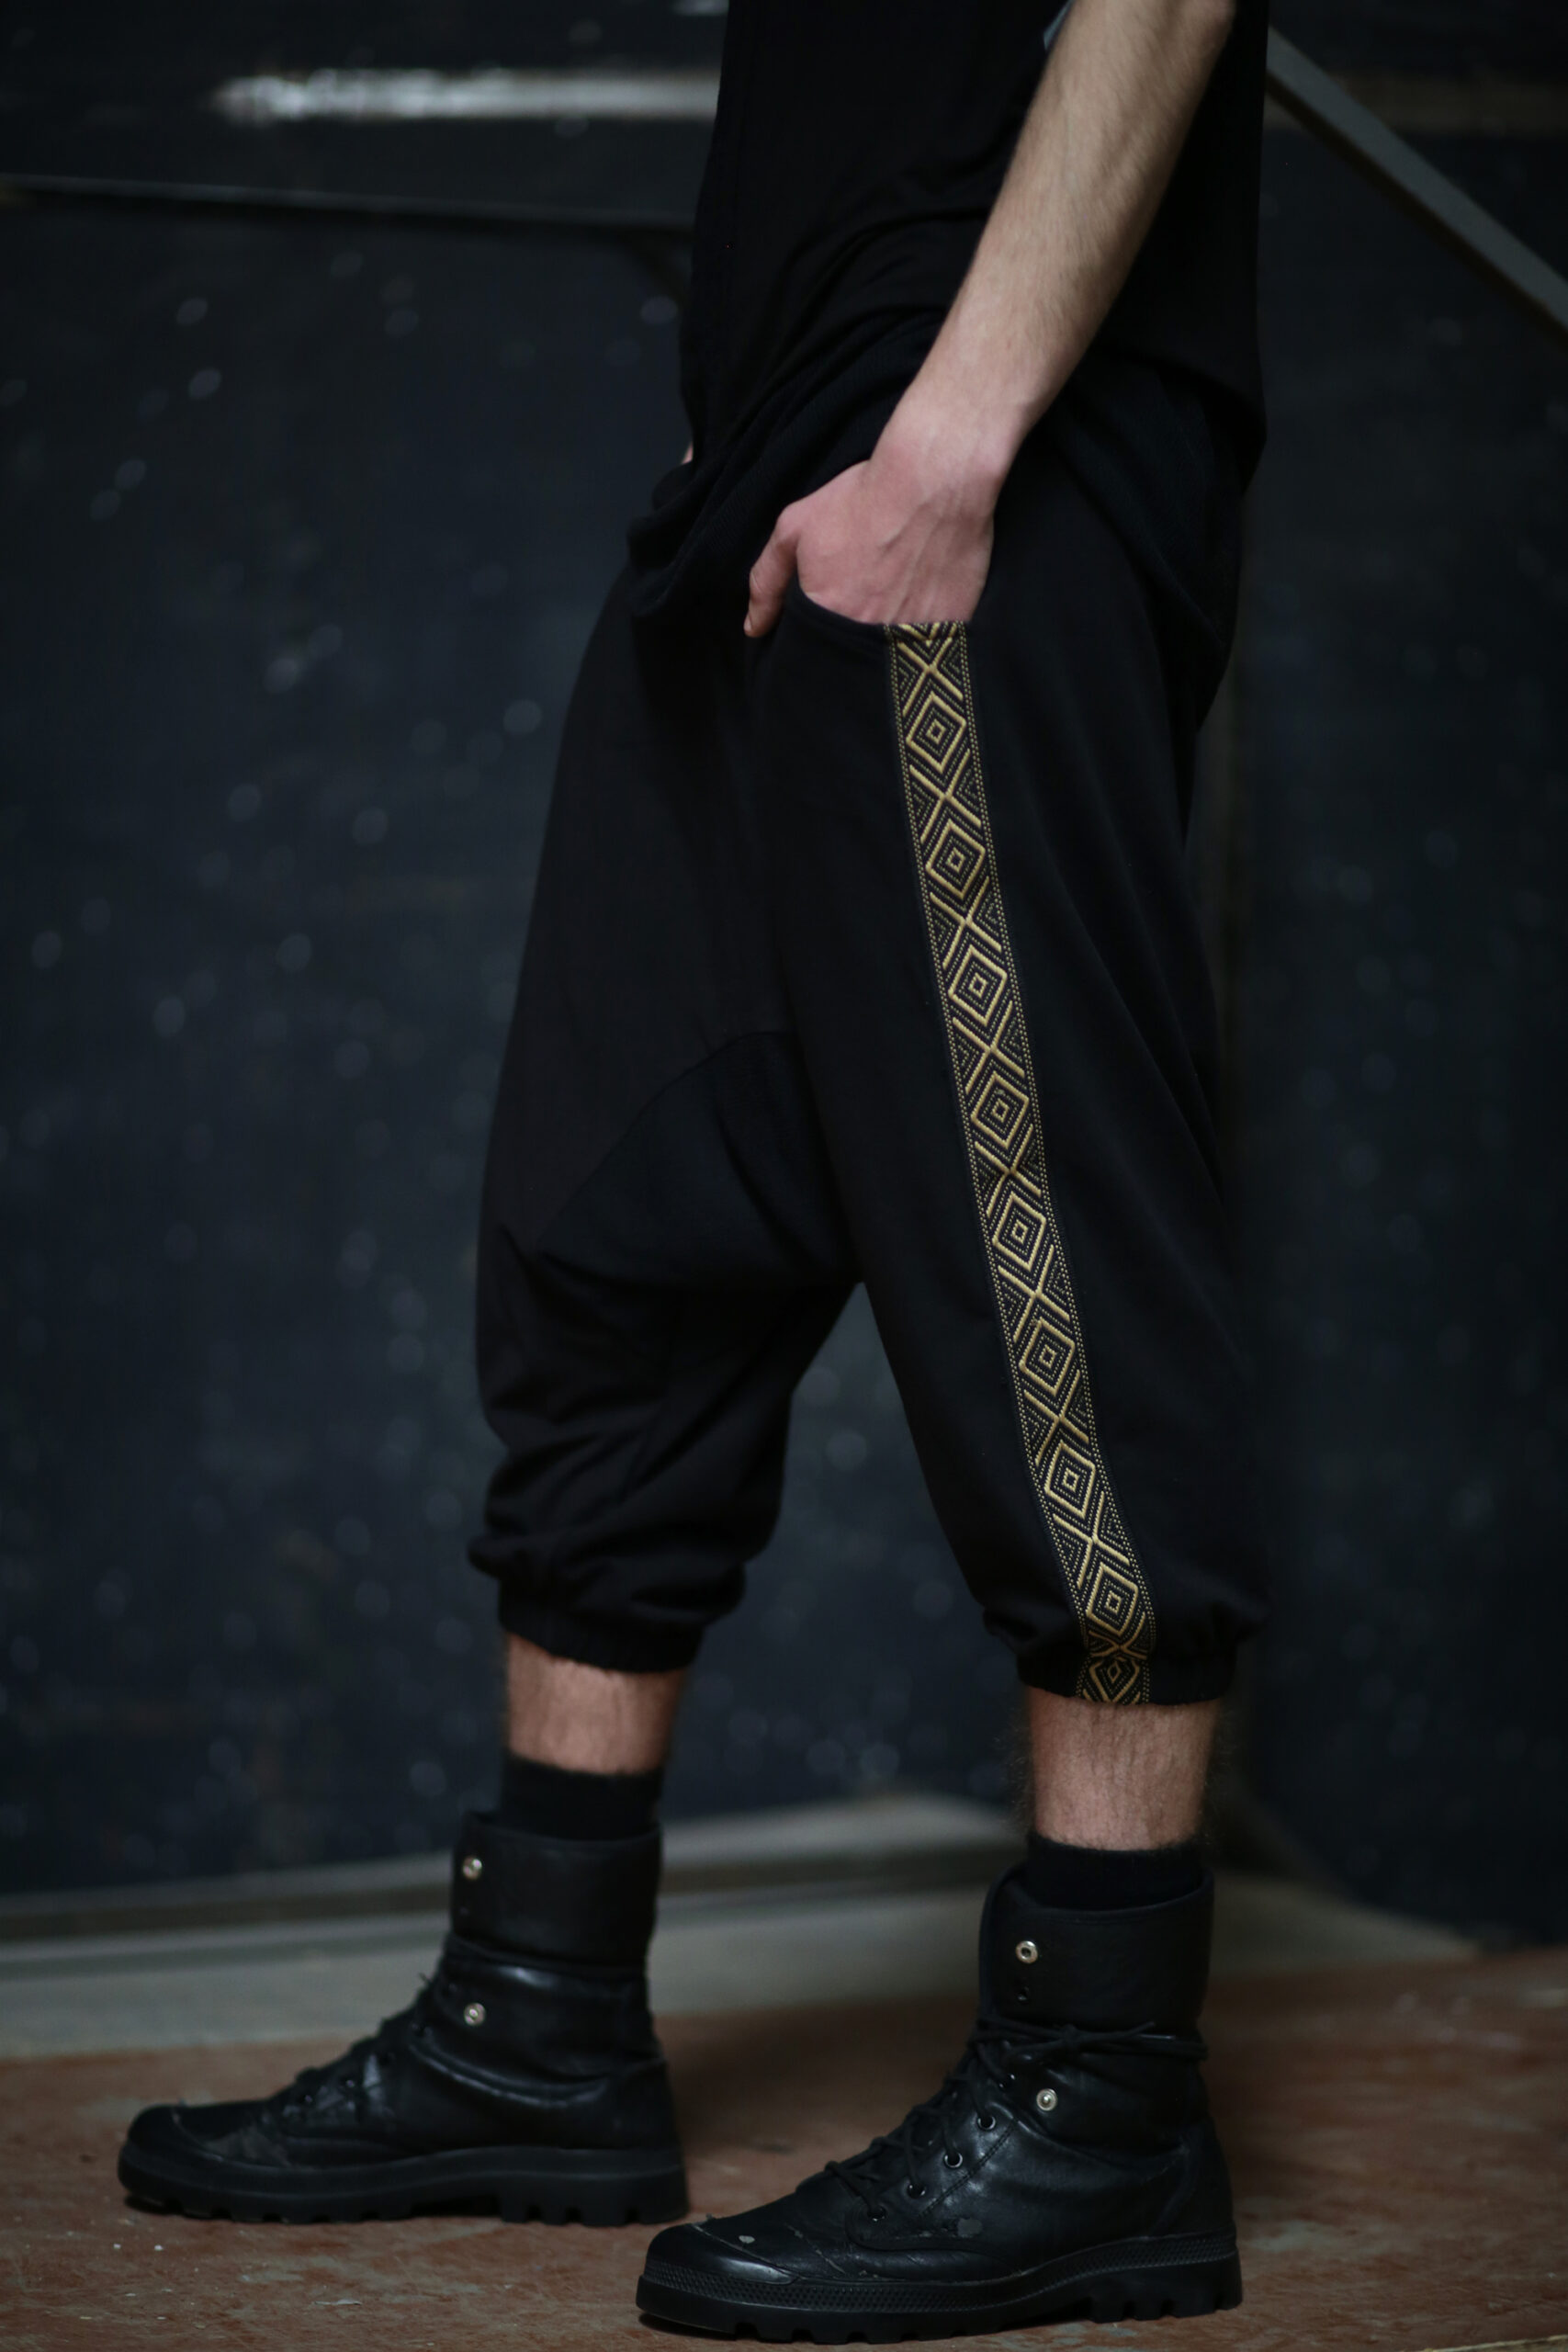 Men loose pants made from cotton lycra fabric, designed with 2 golden stripes